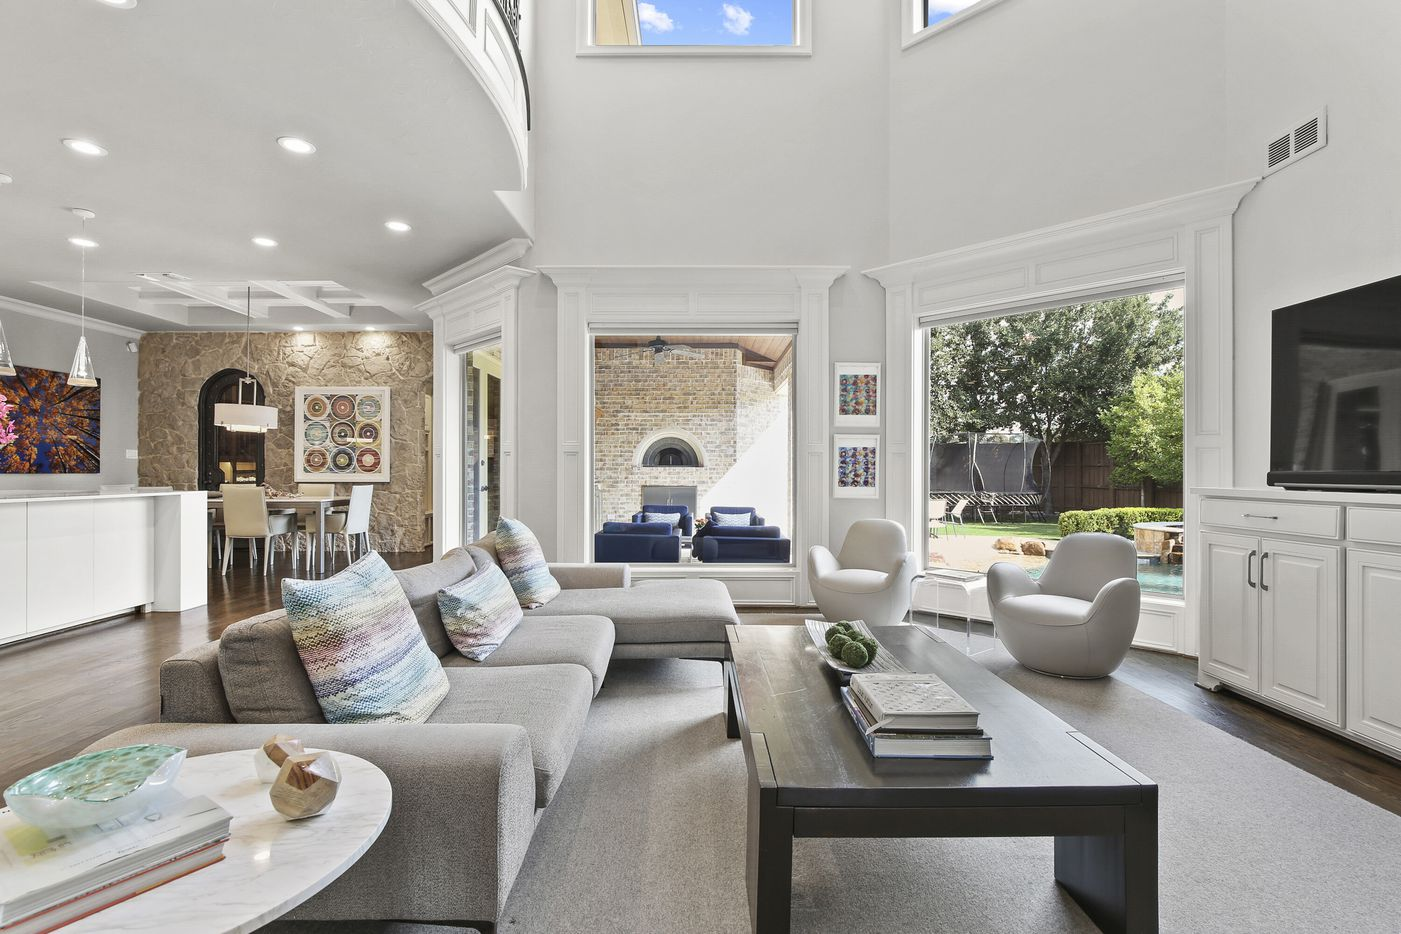 A look at the interior of 6733 Vanderbilt Ave. in Dallas, TX.